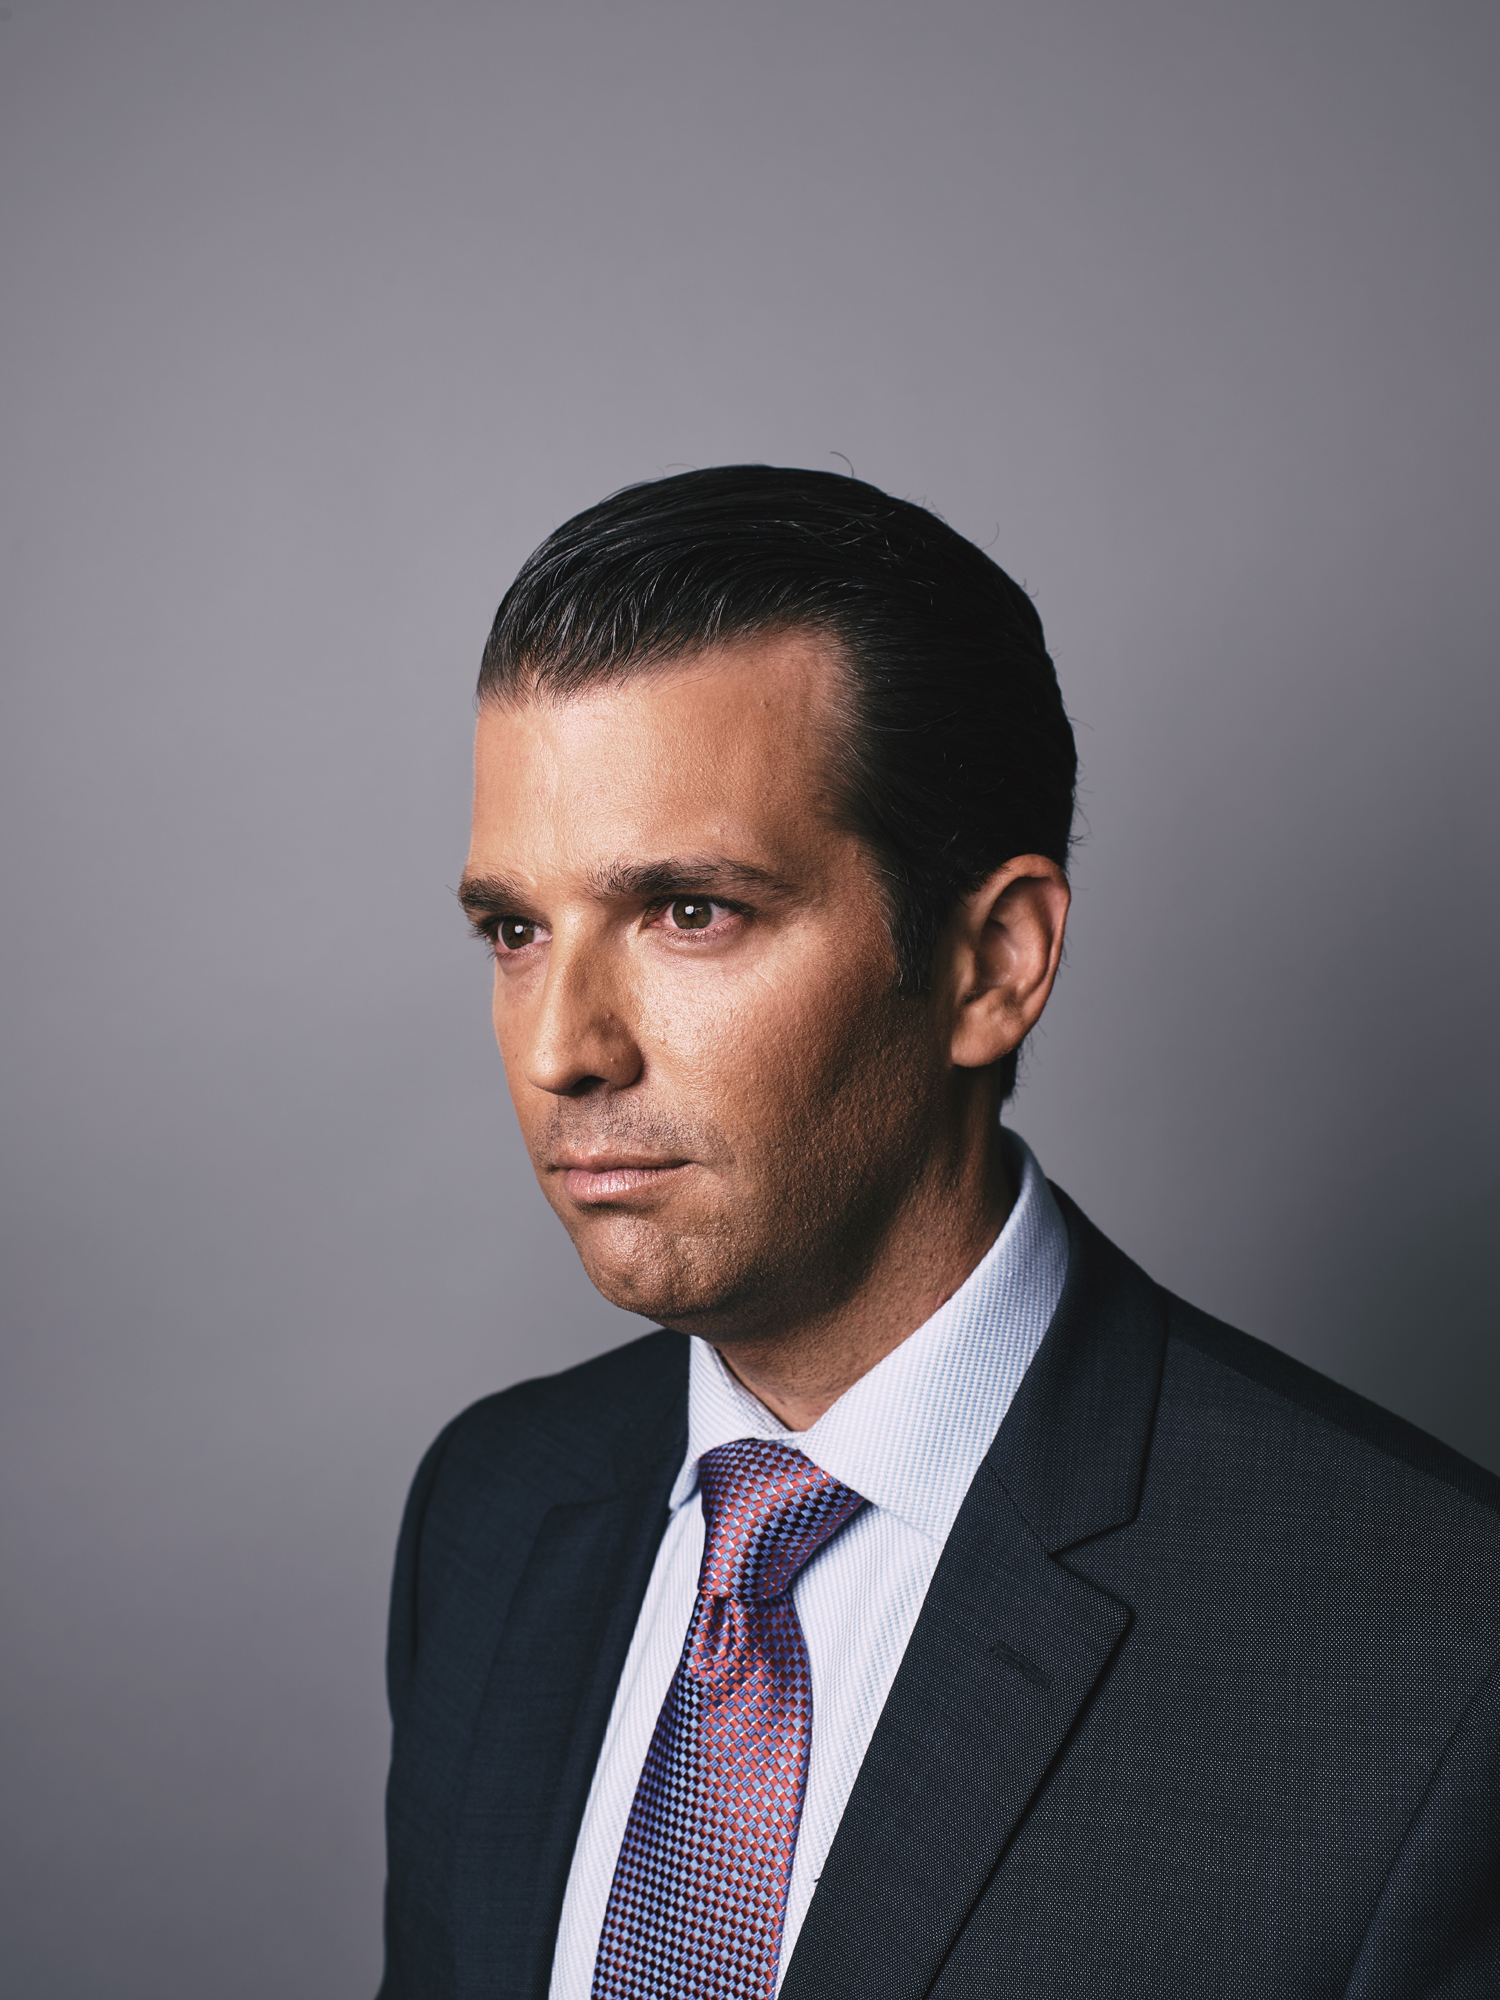 2016_RNC_73 Donald Trump, Jr.-014.jpg